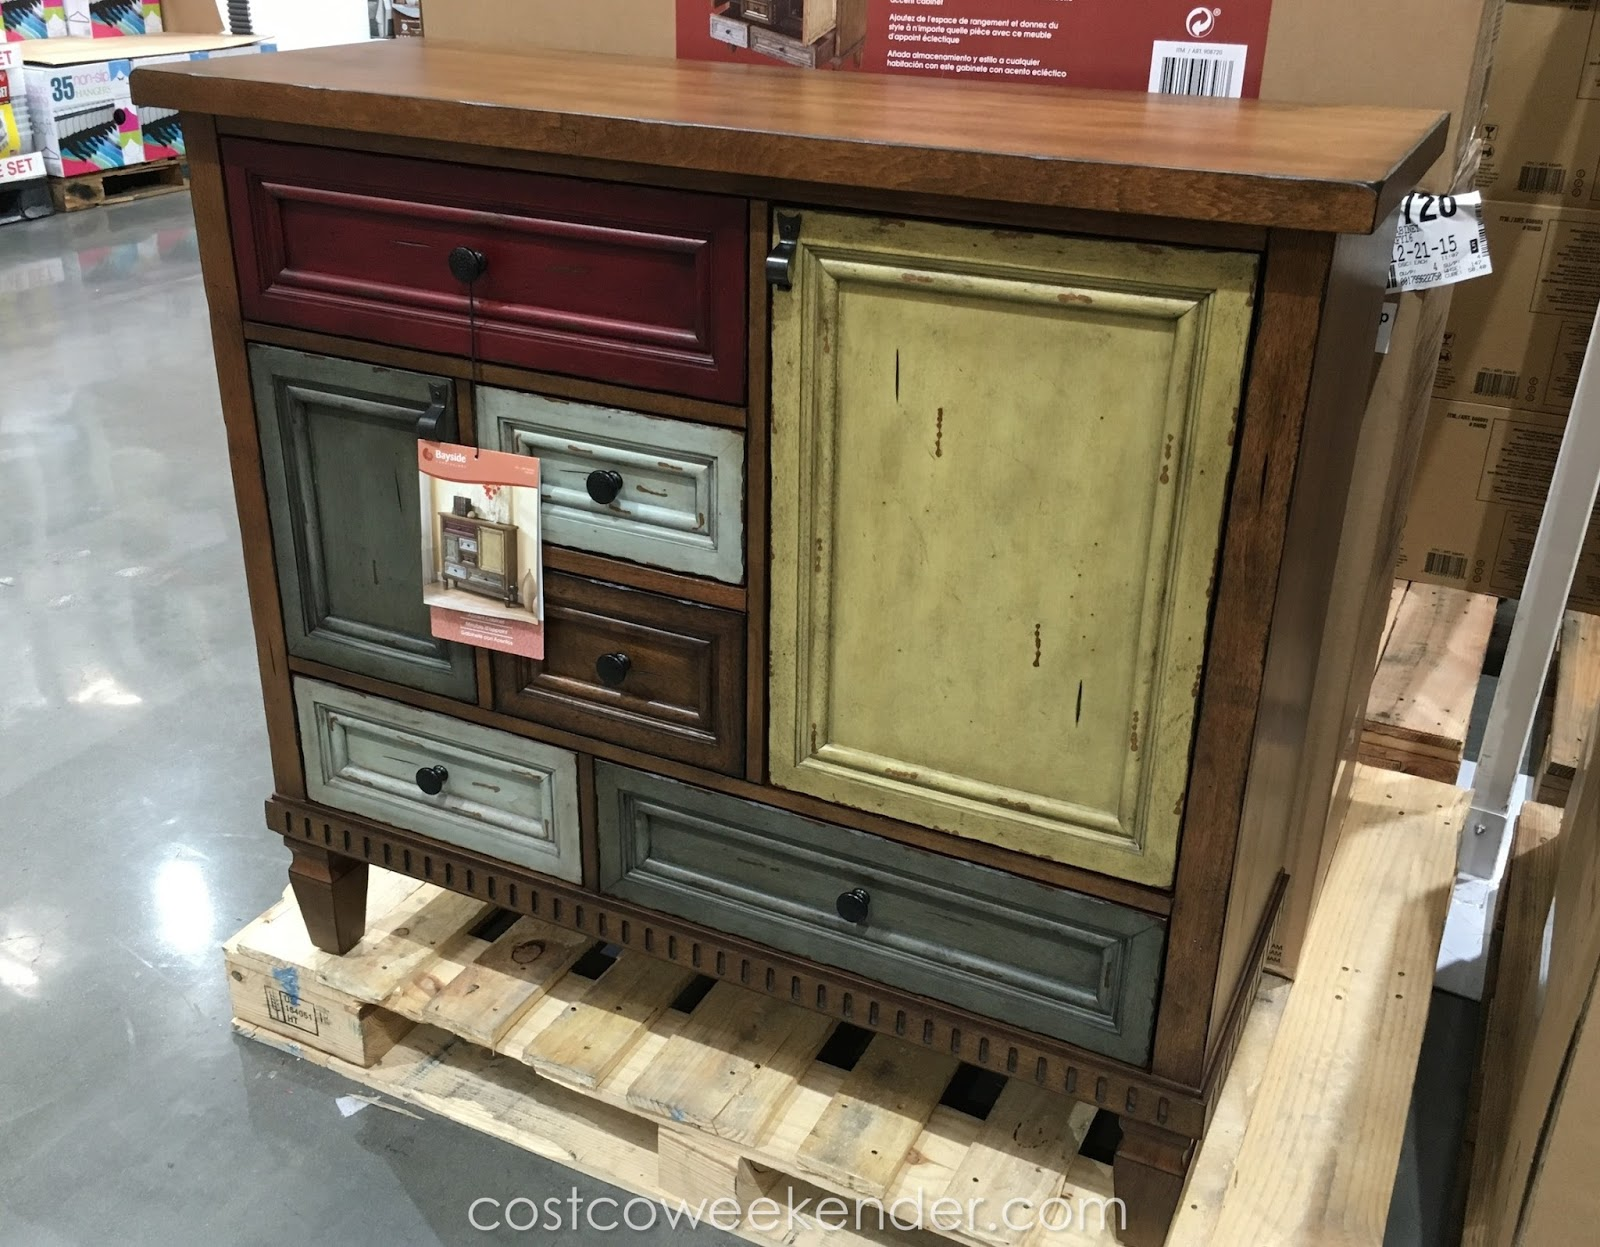 Bon Store Your Belongings With The Bayside Furnishings Accent Cabinet